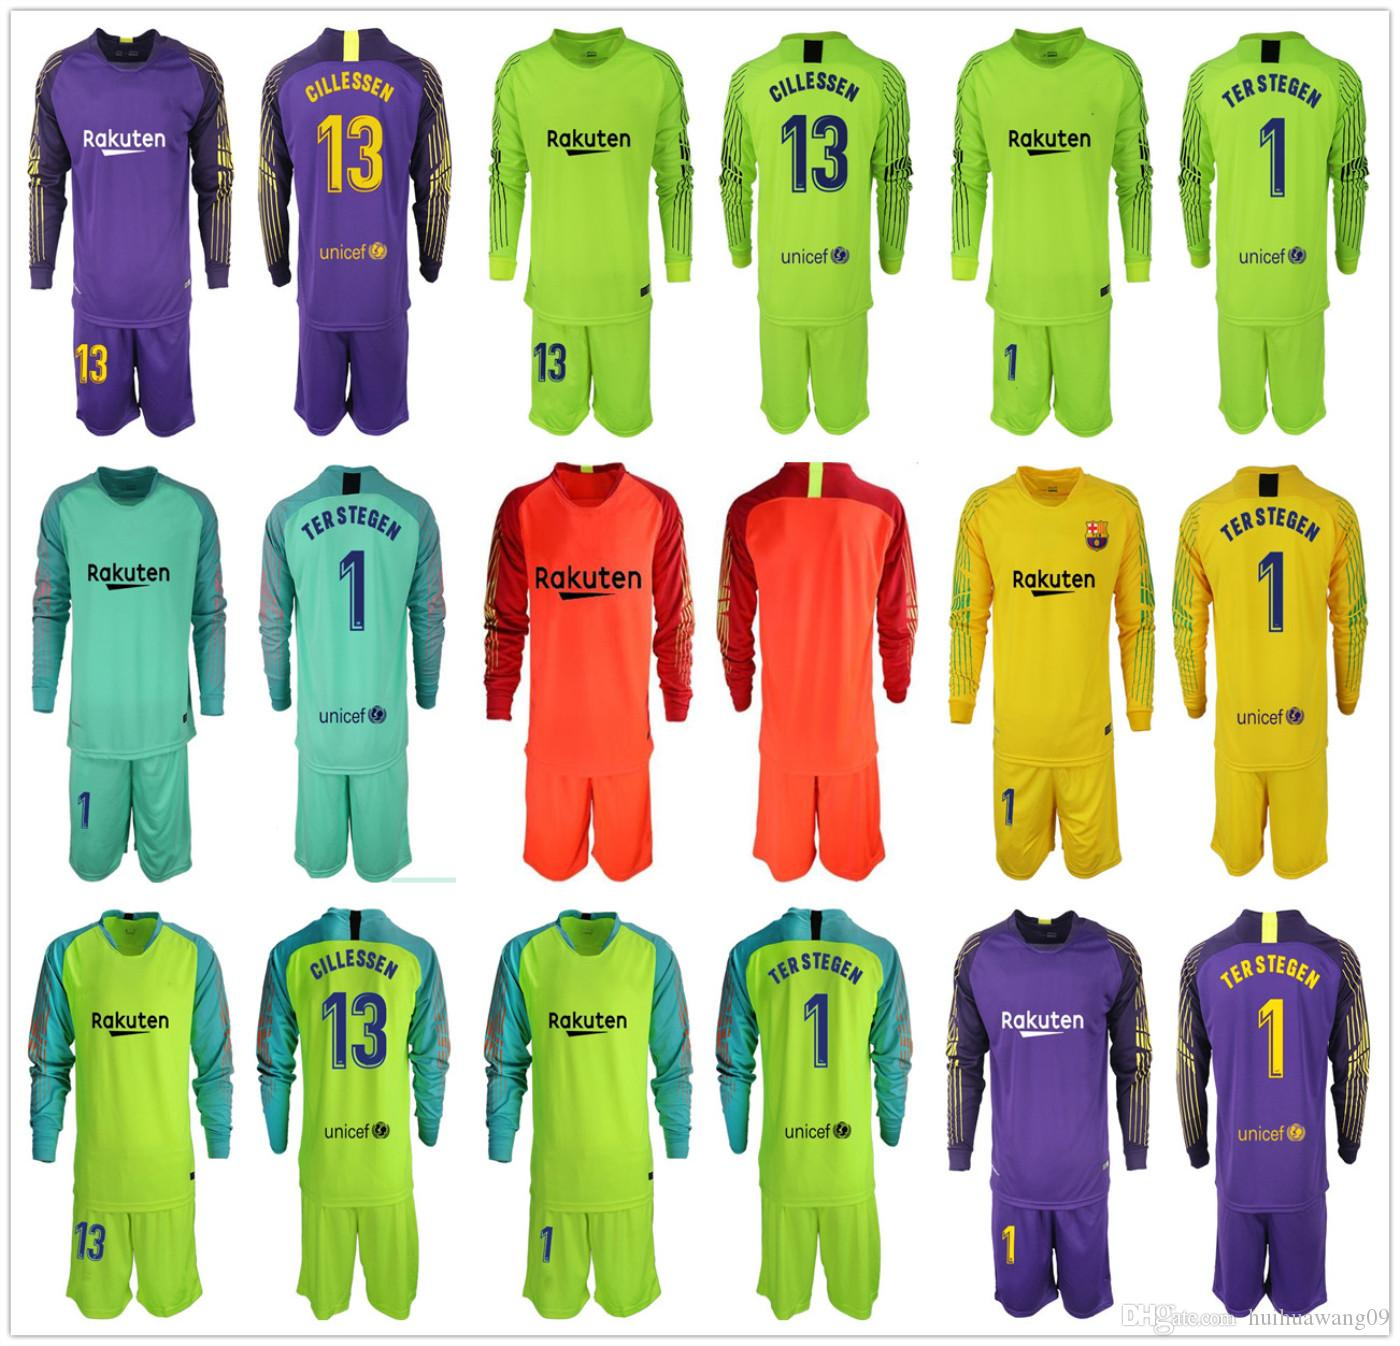 0eccce58382 2019 18 19 Adults GK Set Long  1 Ter Stegen Goalkeeper Jerseys 13 Cillessen  Soccer Sets Marc Andre Ter Stegen Football Kit Goalie Uniforms Men From ...